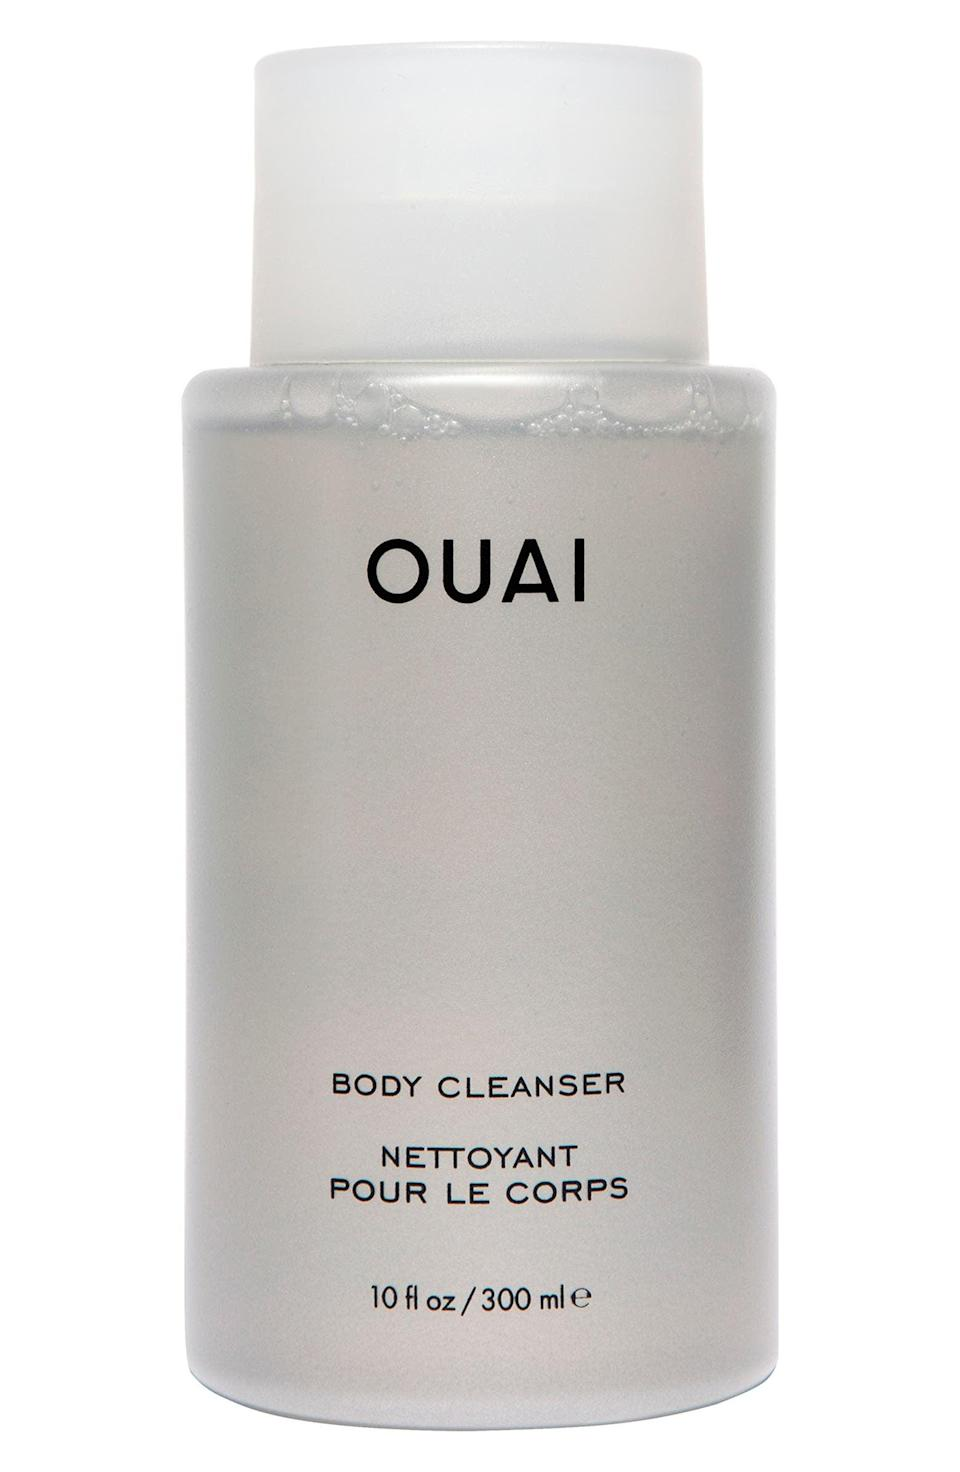 <p>The <span>Ouai Body Cleanser</span> ($28) features a hydrating, jojoba-rich formula that smells like fresh citrus and a luxurious bouquet of flowers.</p>